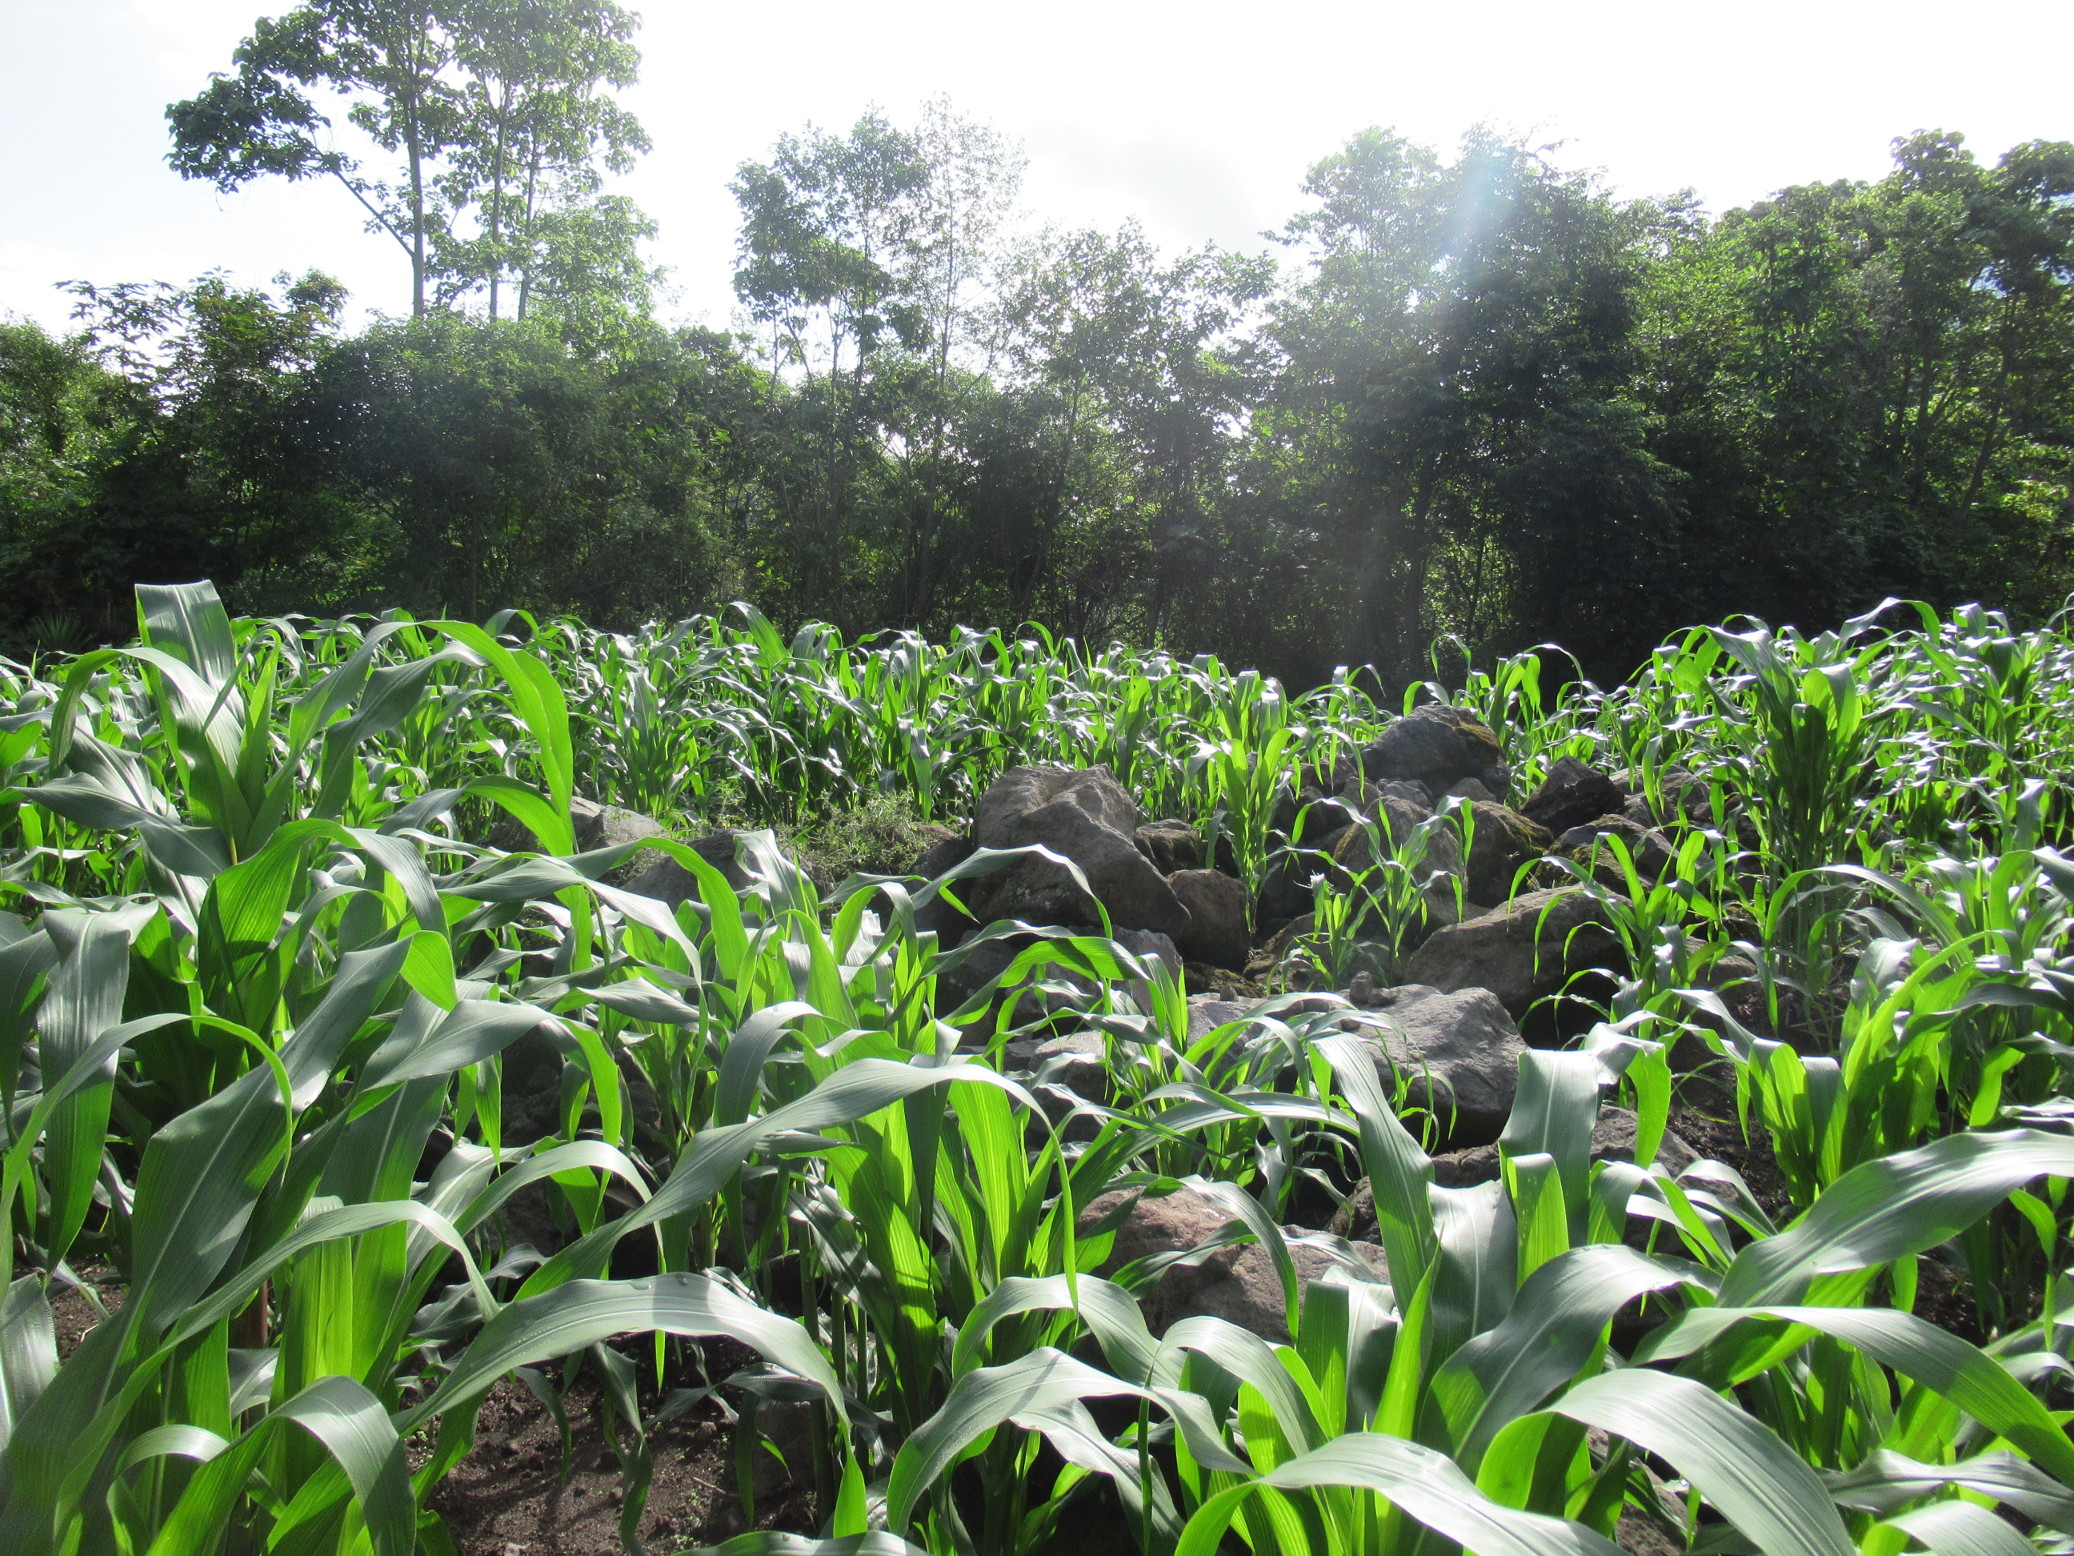 corn grows better with rocks nearby